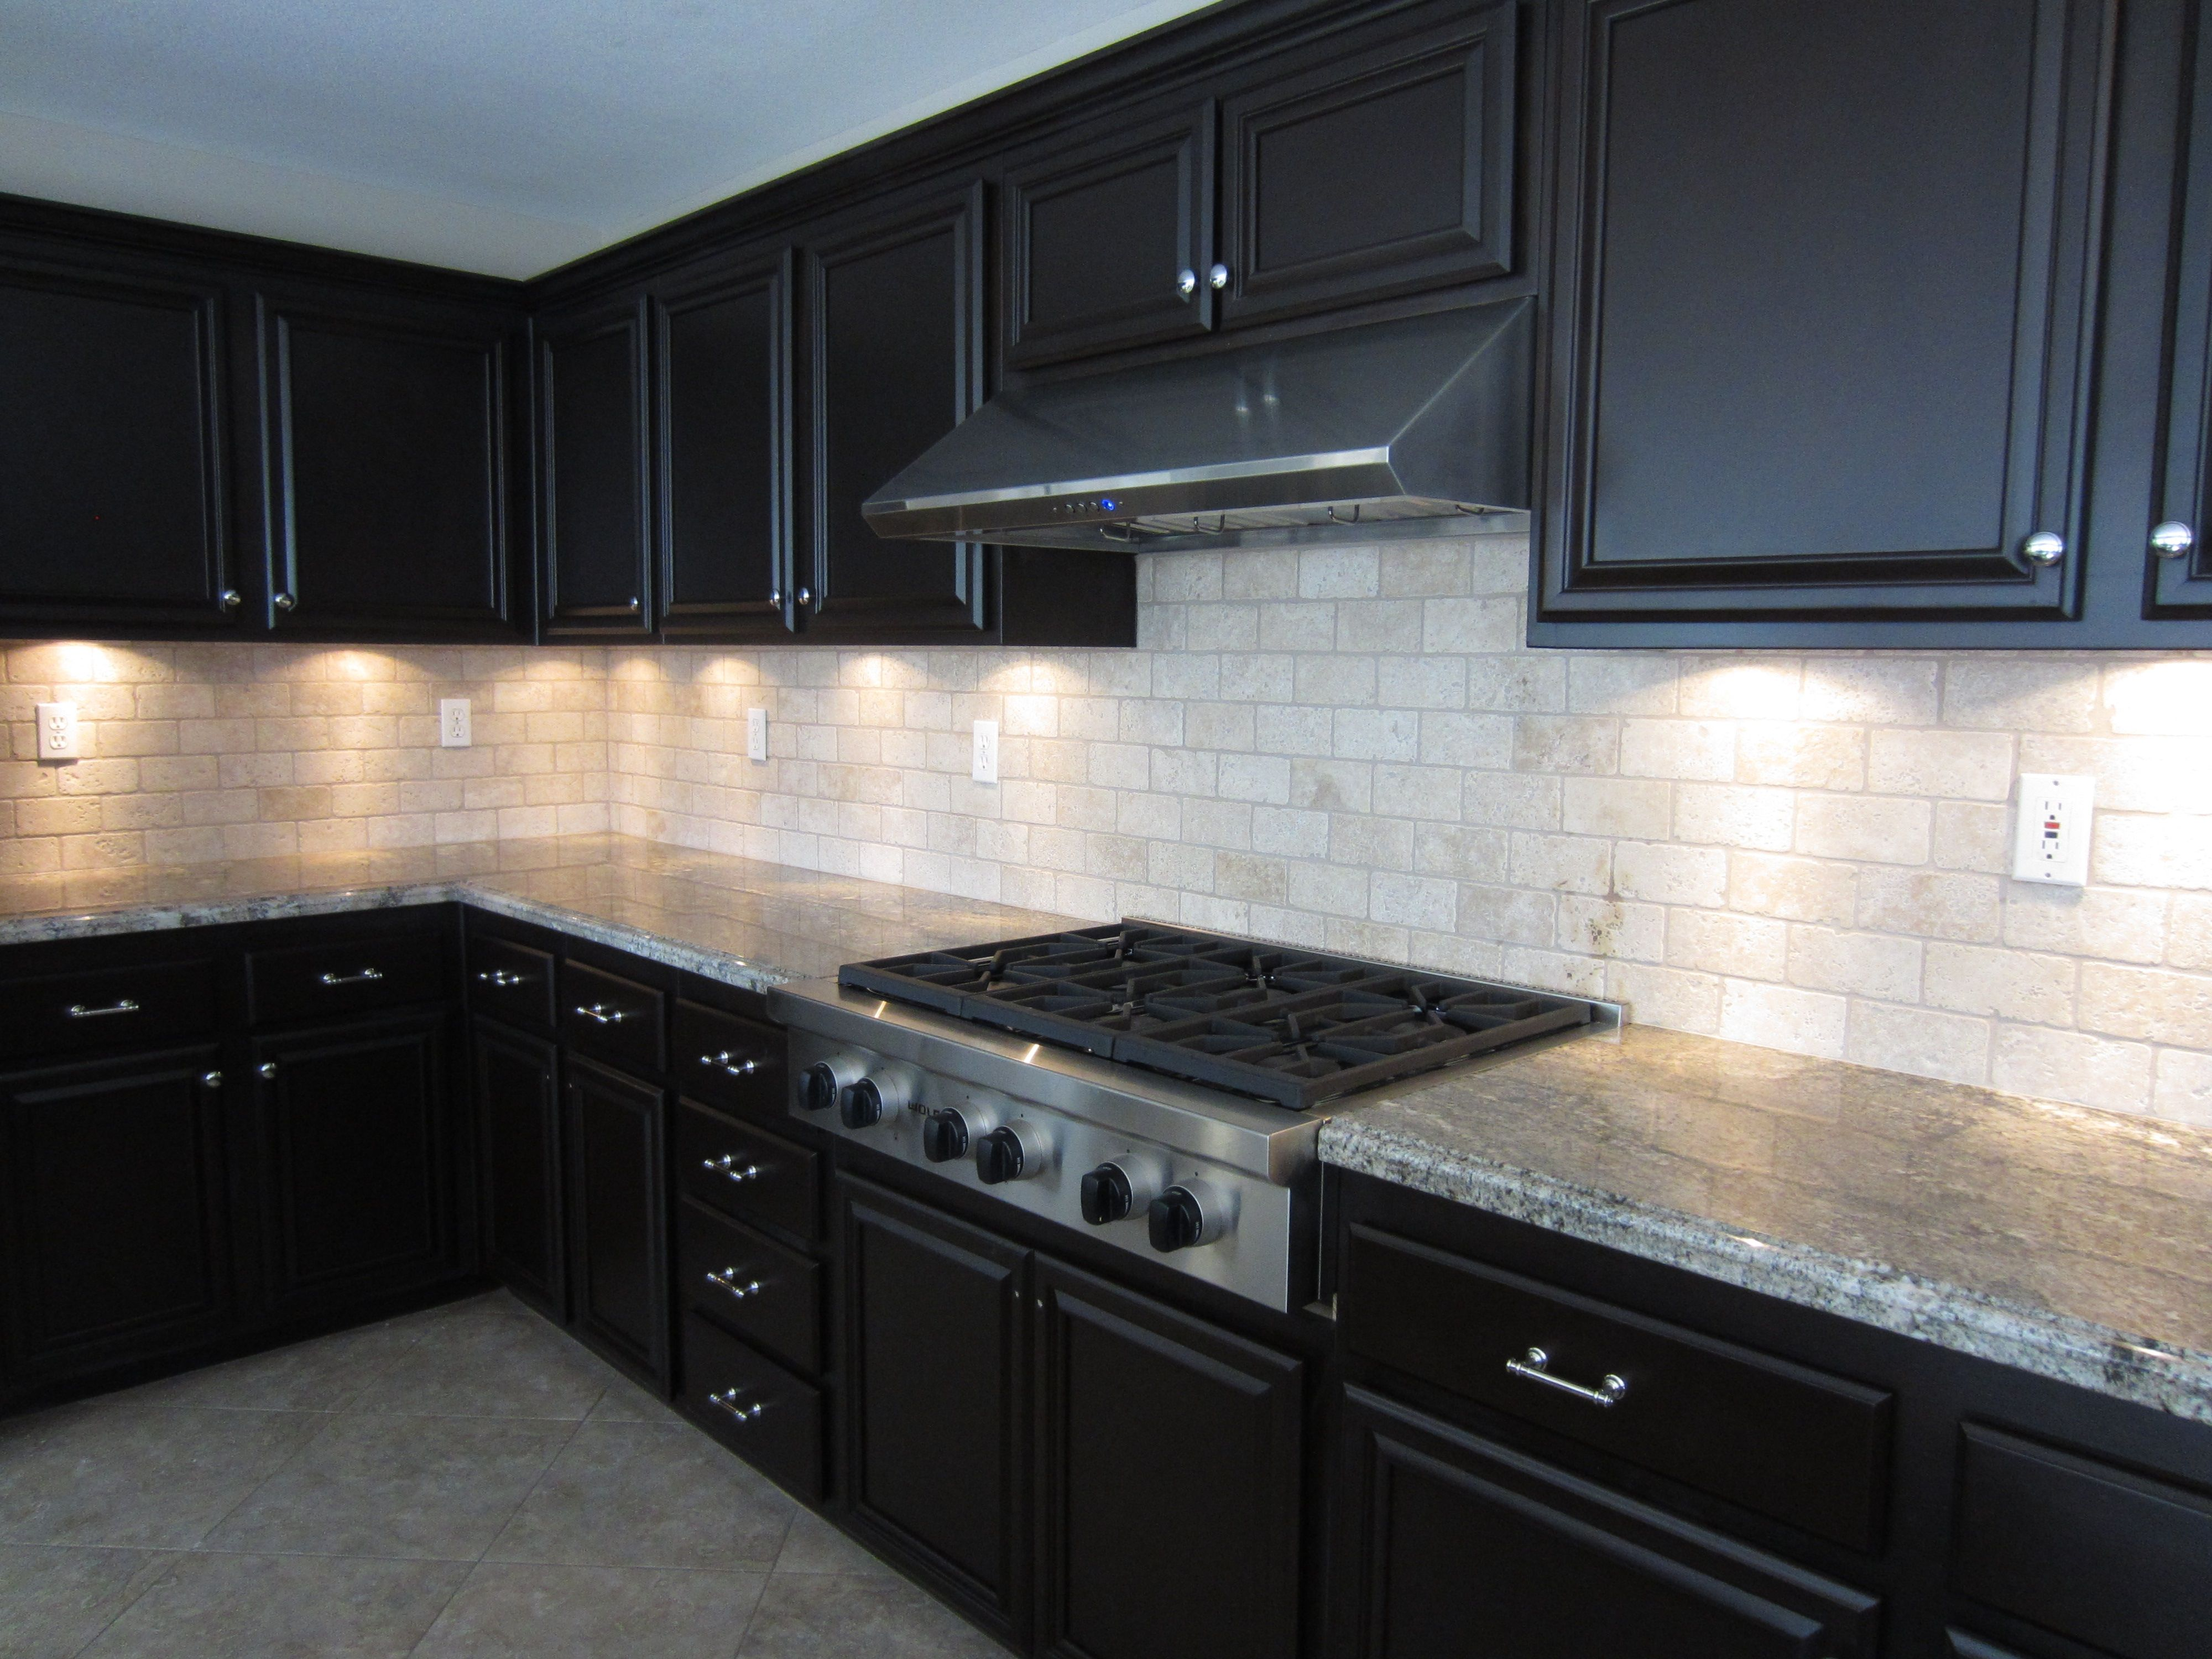 kitchen reno dark kitchen cabinets 13 best images about Kitchen Reno on Pinterest Shaker cabinets Ceramic wall tiles and Discount kitchen cabinets